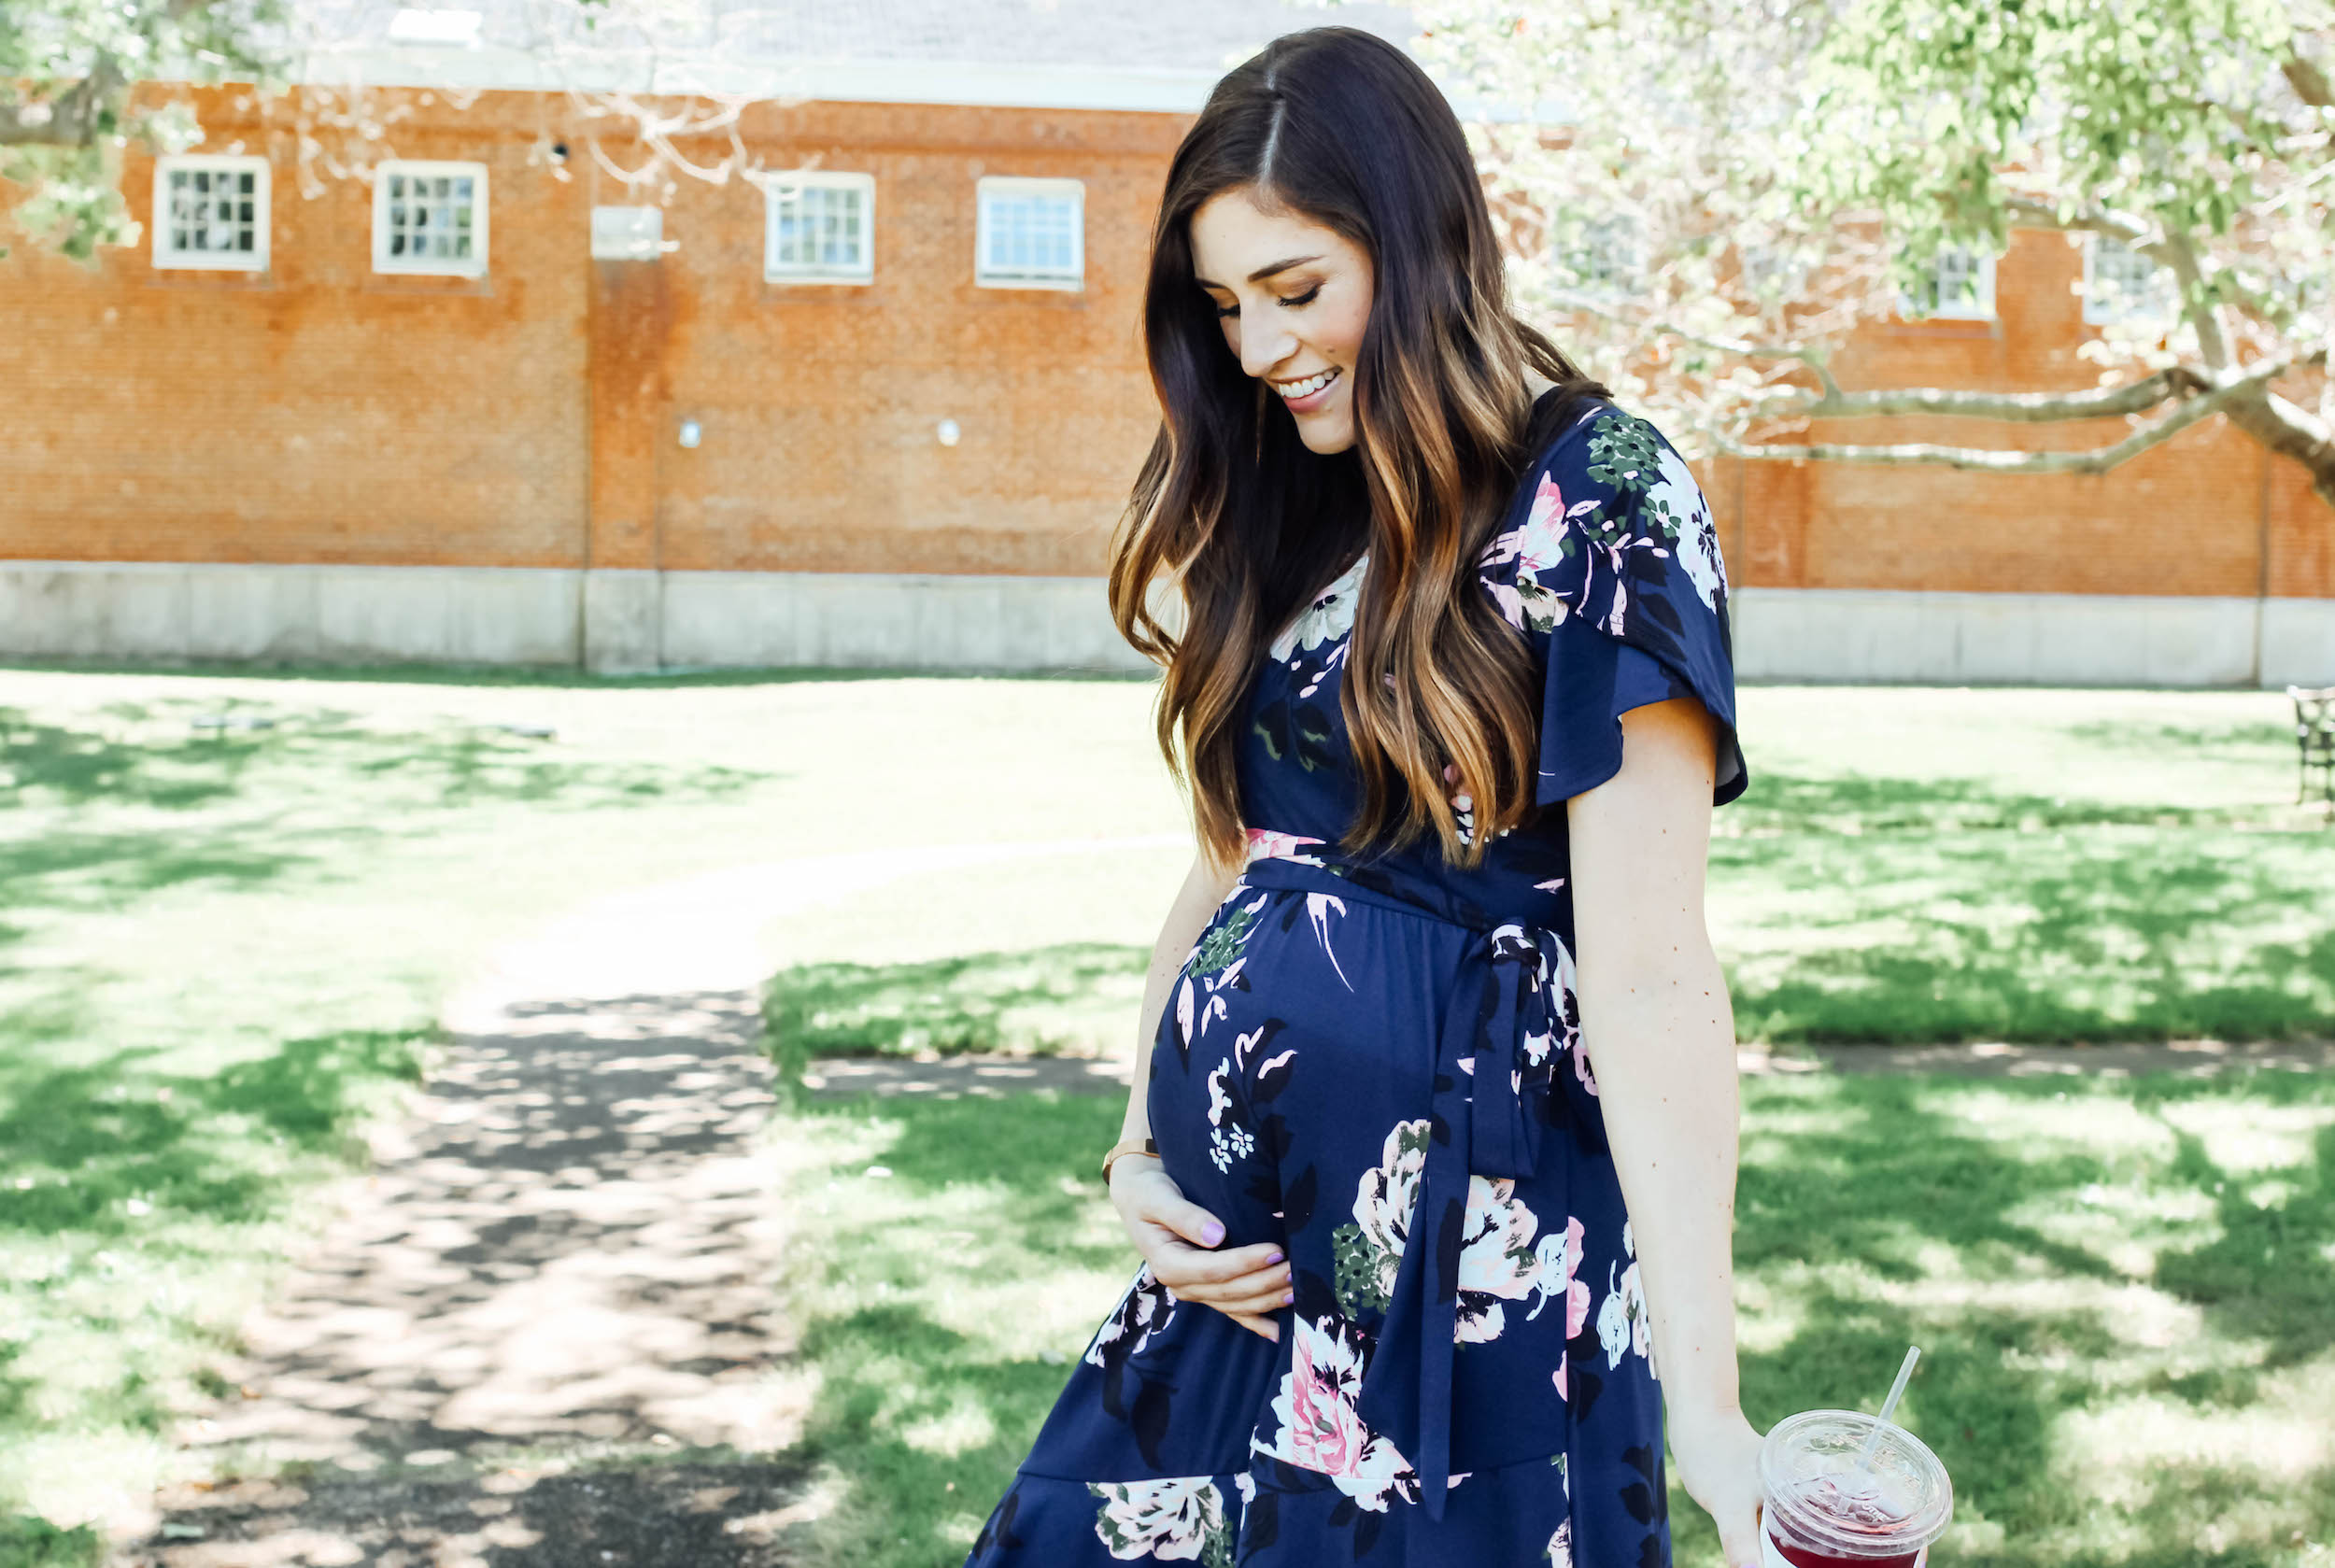 Maternity Style | 5 Things It's Completely OK To Feel During Pregnancy